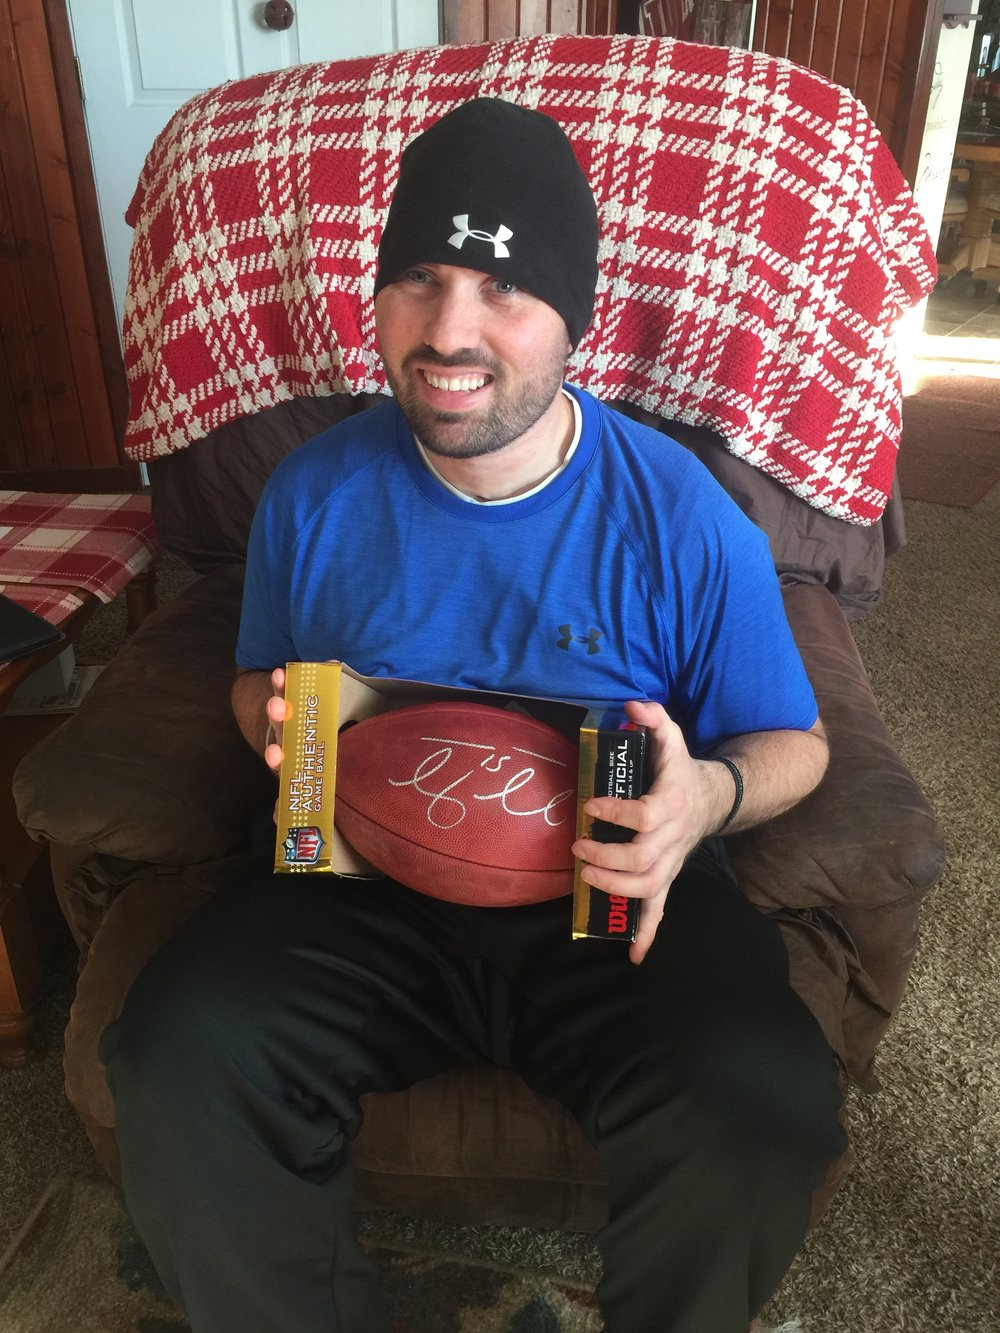 Travis today (2017) holding one of his favorite collectibles, autographed football by Tim Tebow.